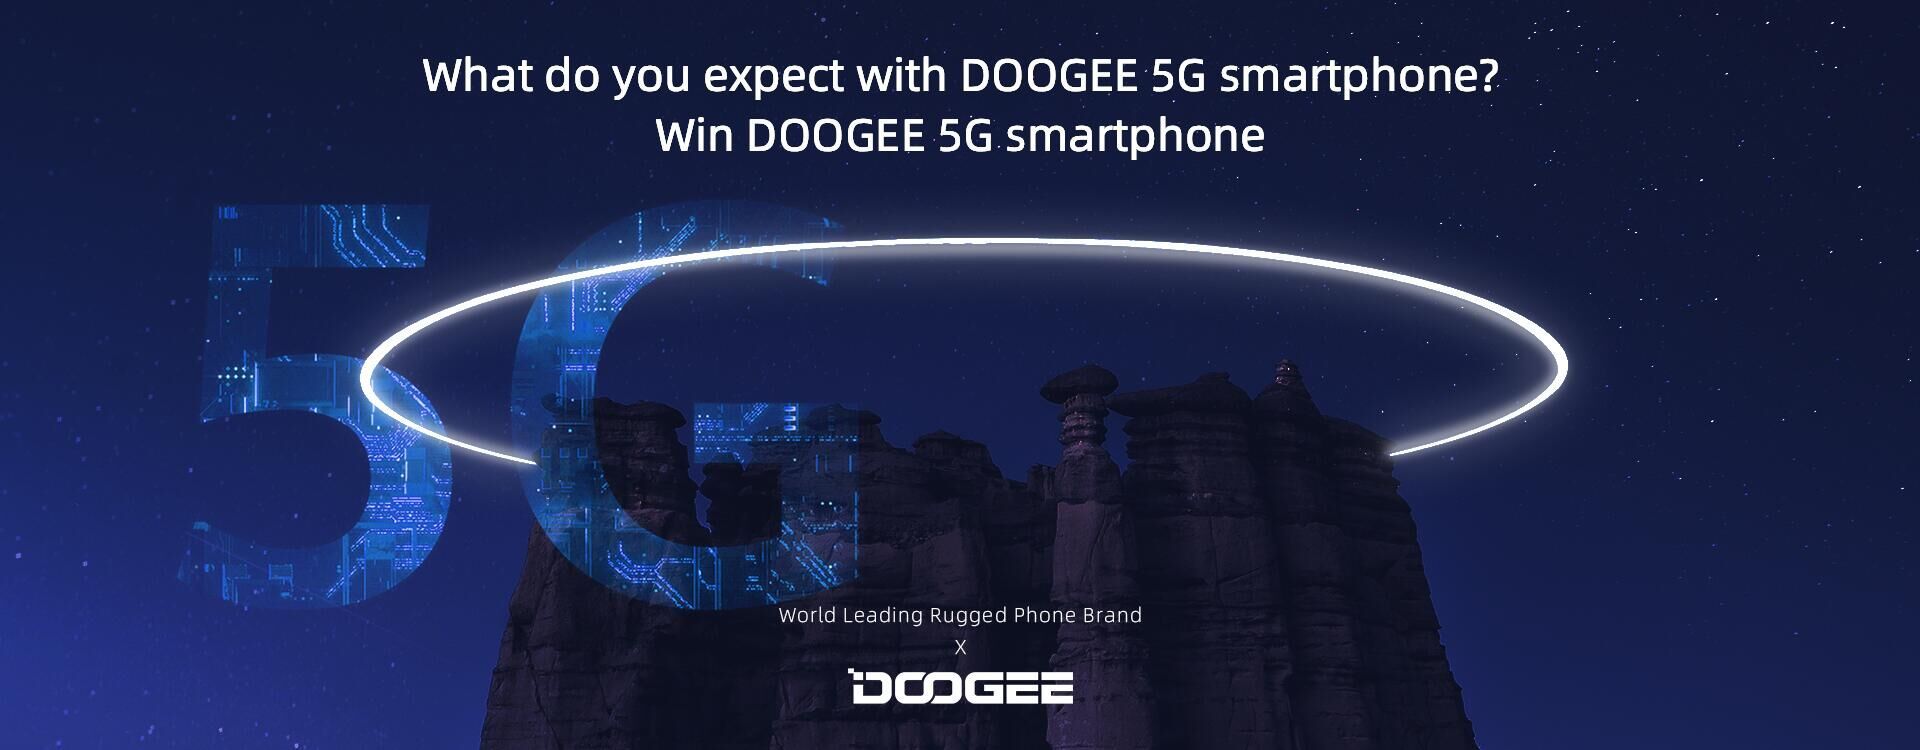 #5G #DOOGEE Guys I have a good news, we're about to prepare the #5GPhone Do you like it?